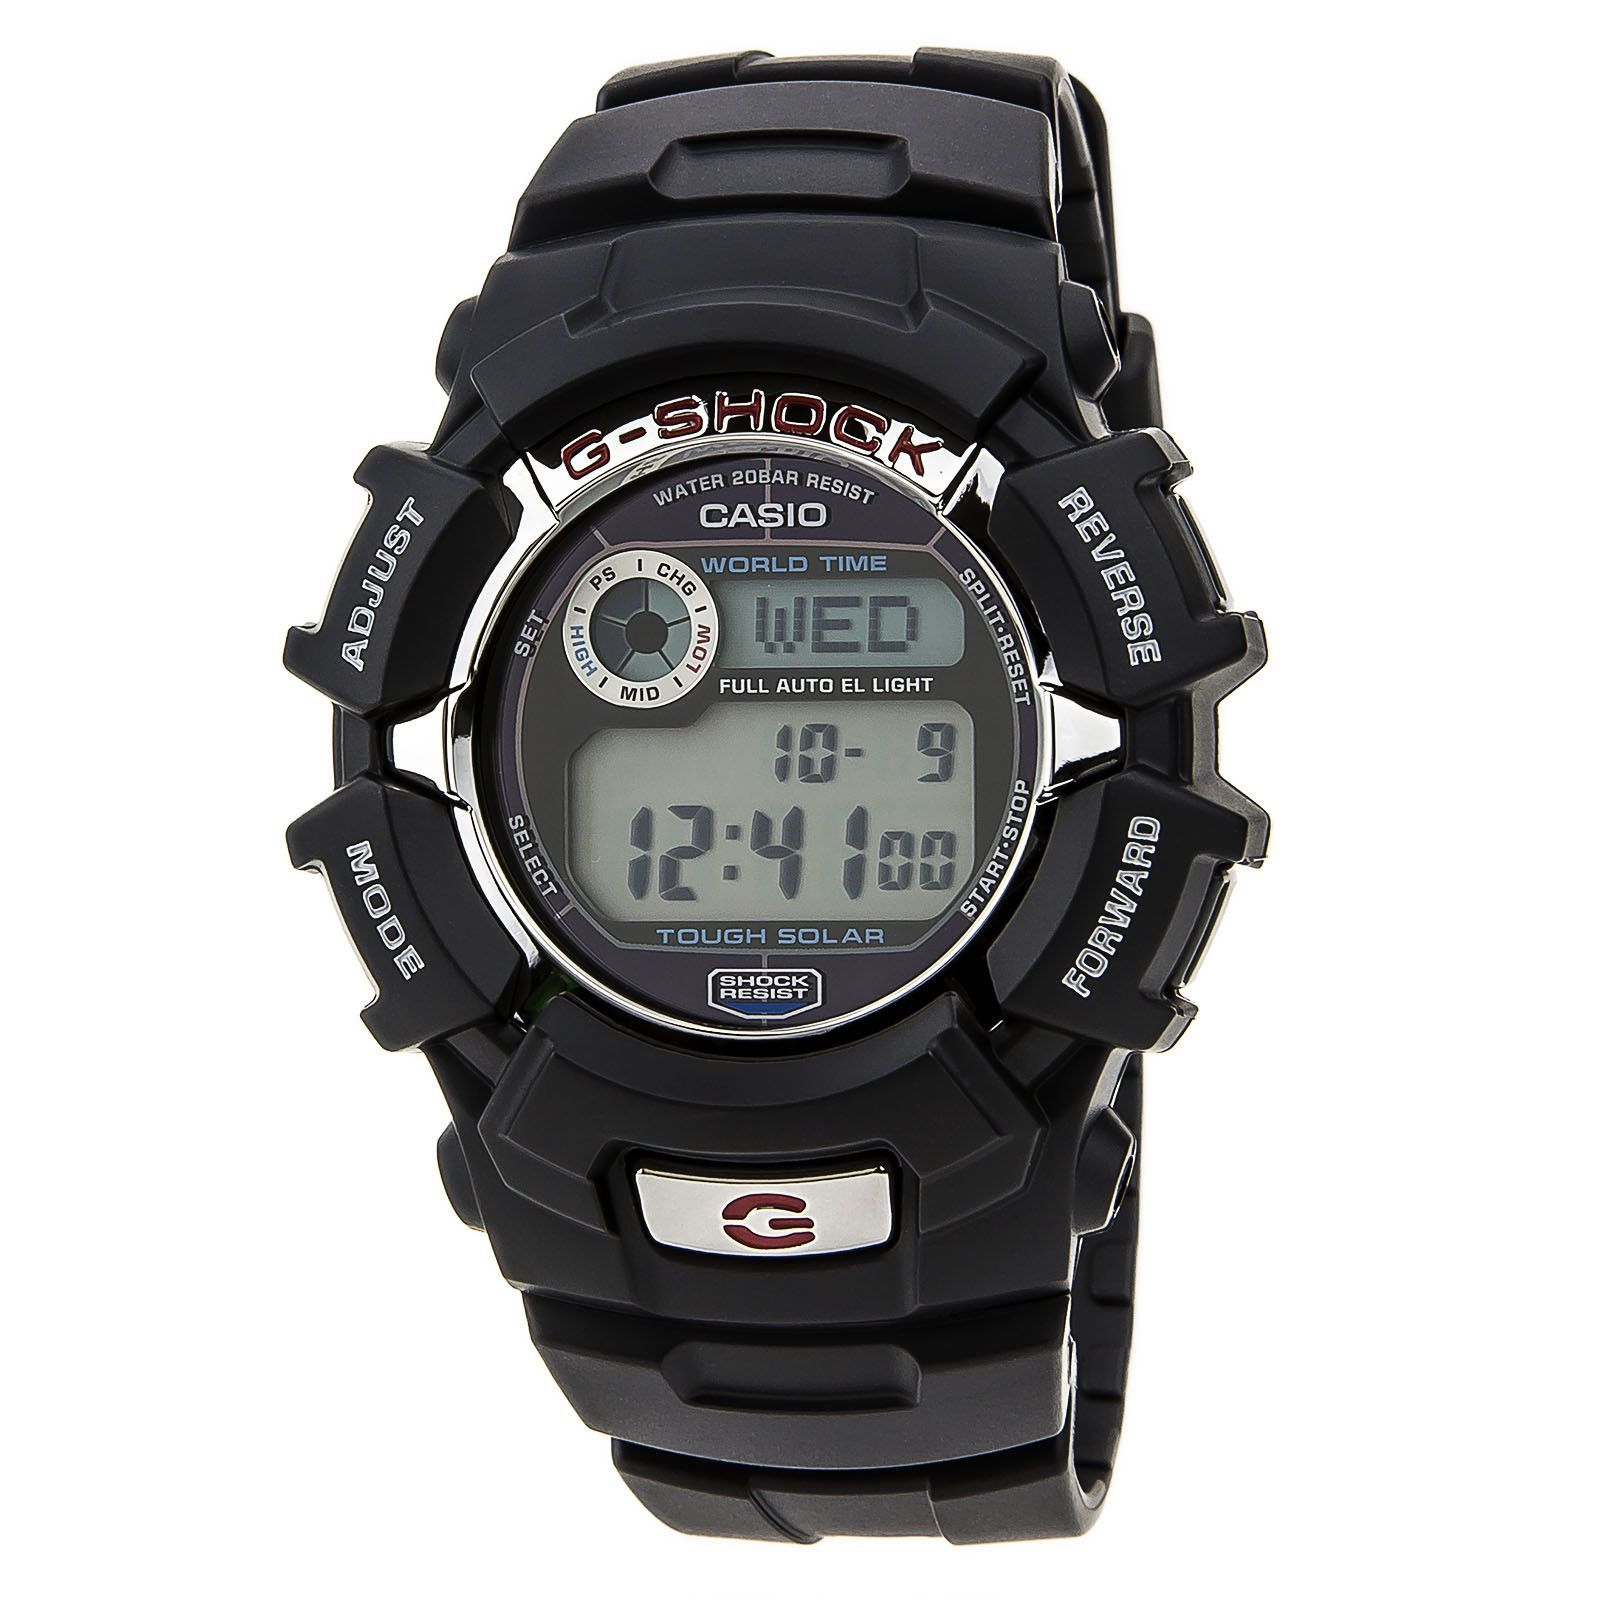 watch pinterest watches gps seiko pin board astron solar power